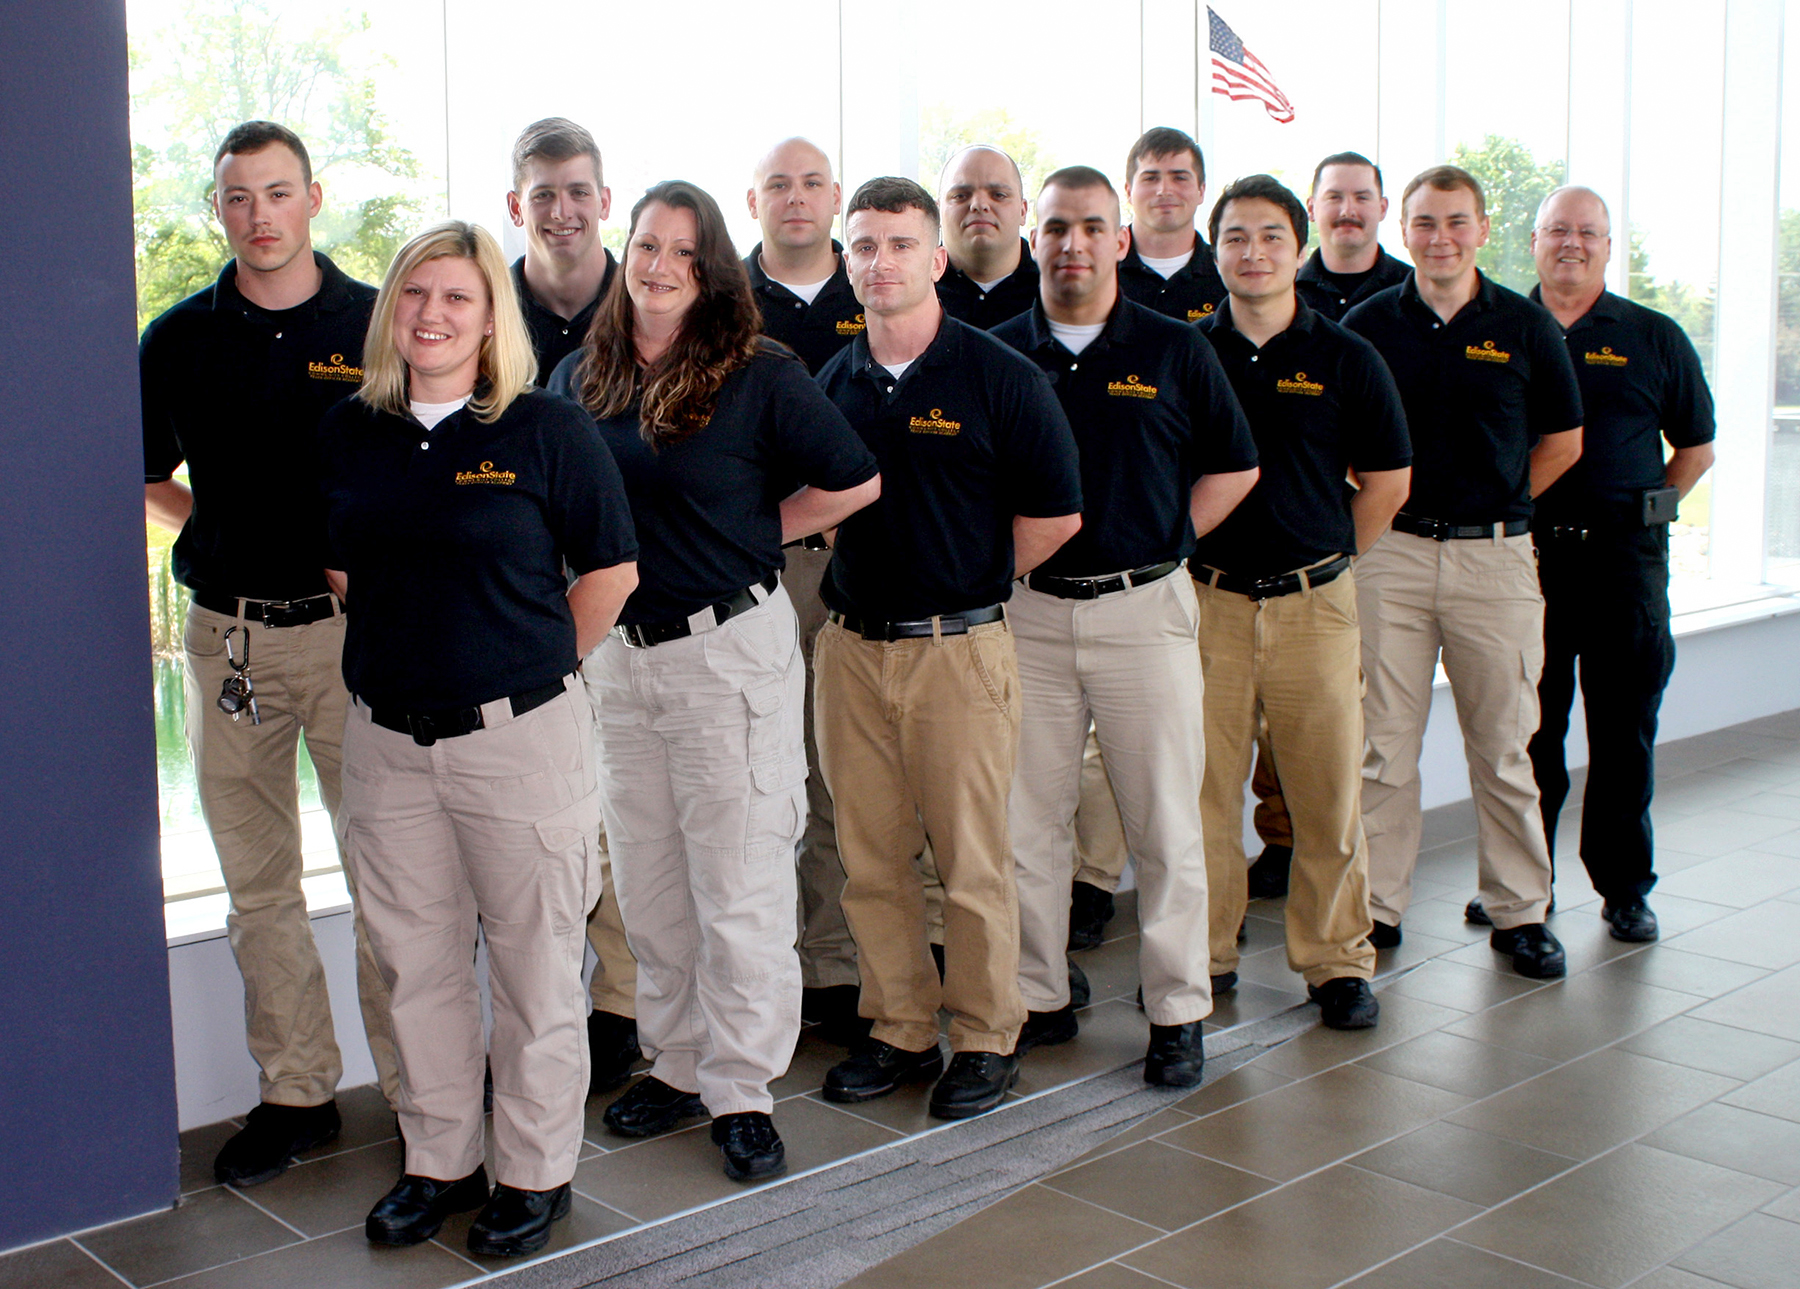 News | 2017 | June 2017 | Students Complete Police Training